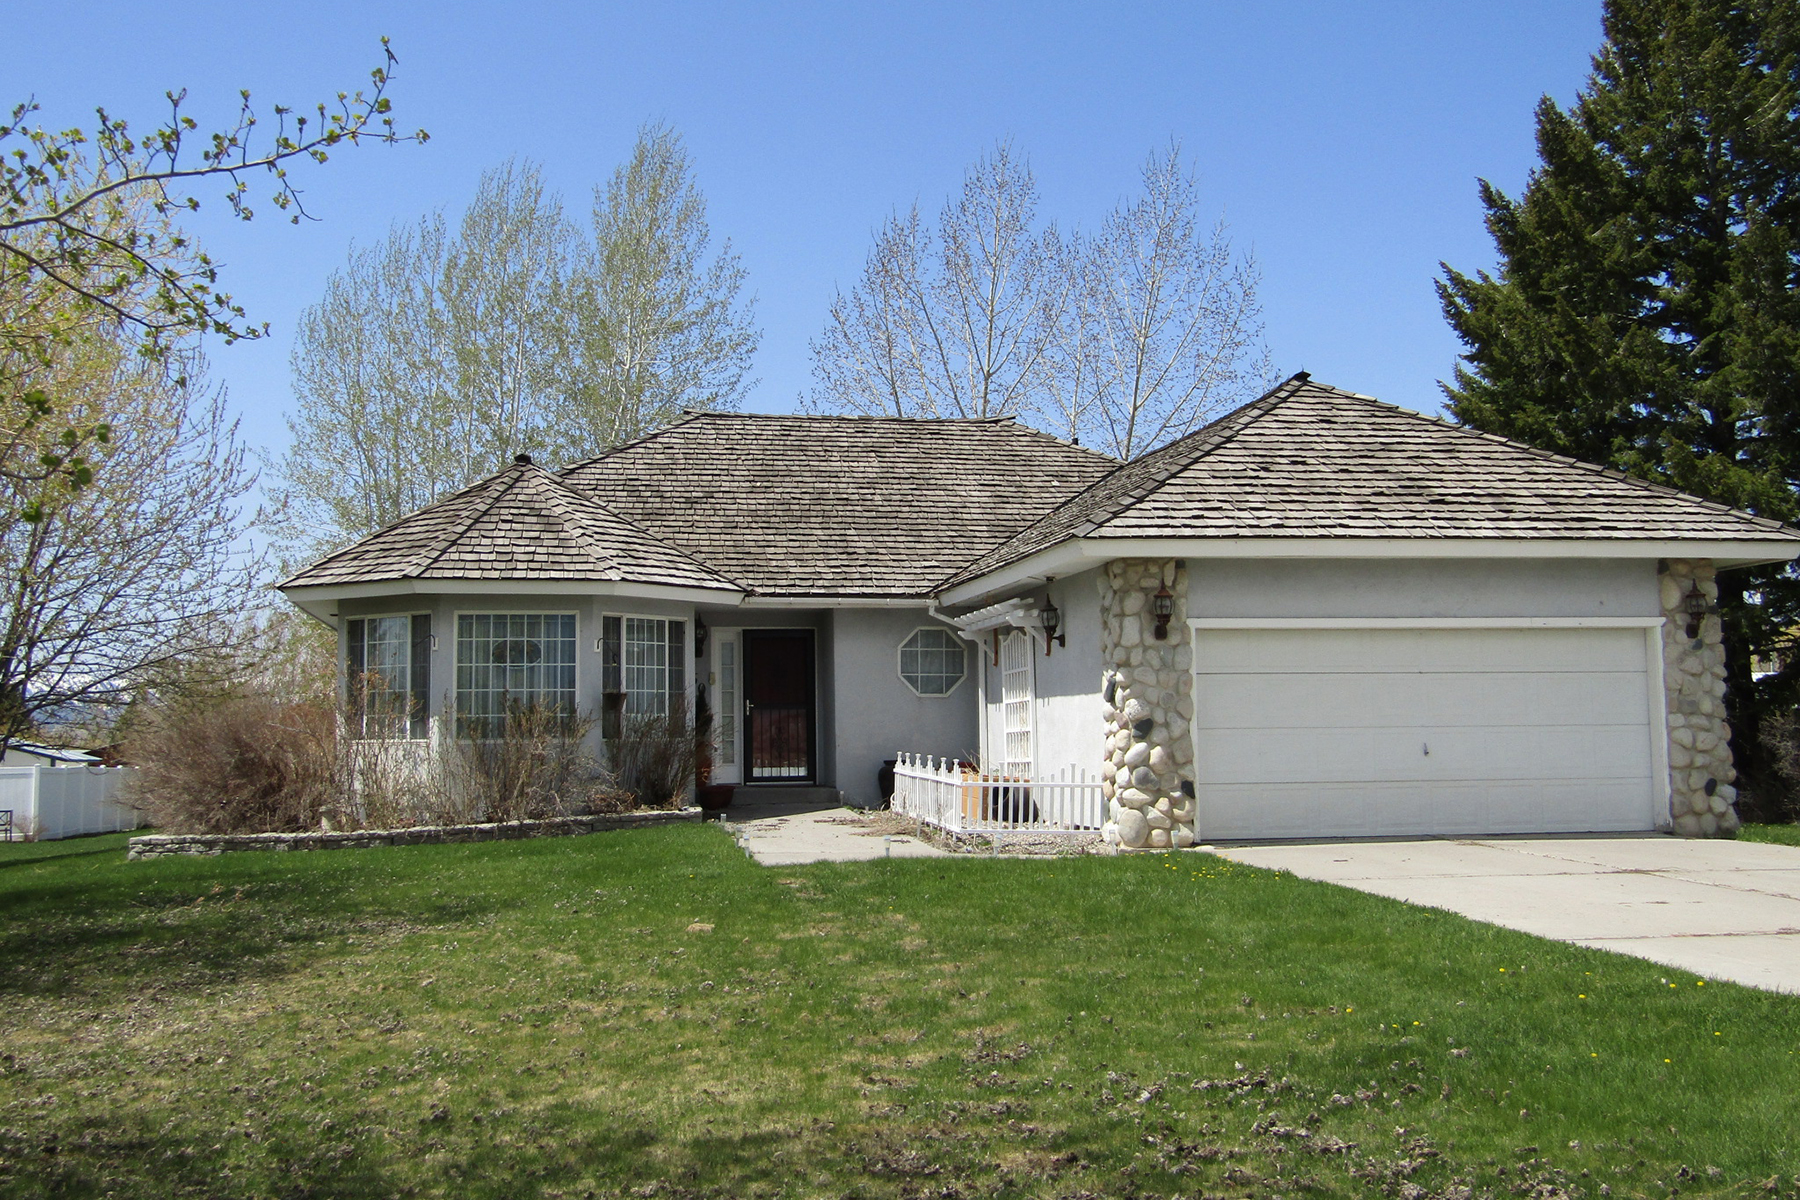 Single Family Homes for Sale at In-Town Living At It's Finest 60 North 5th St Driggs, Idaho 83422 United States